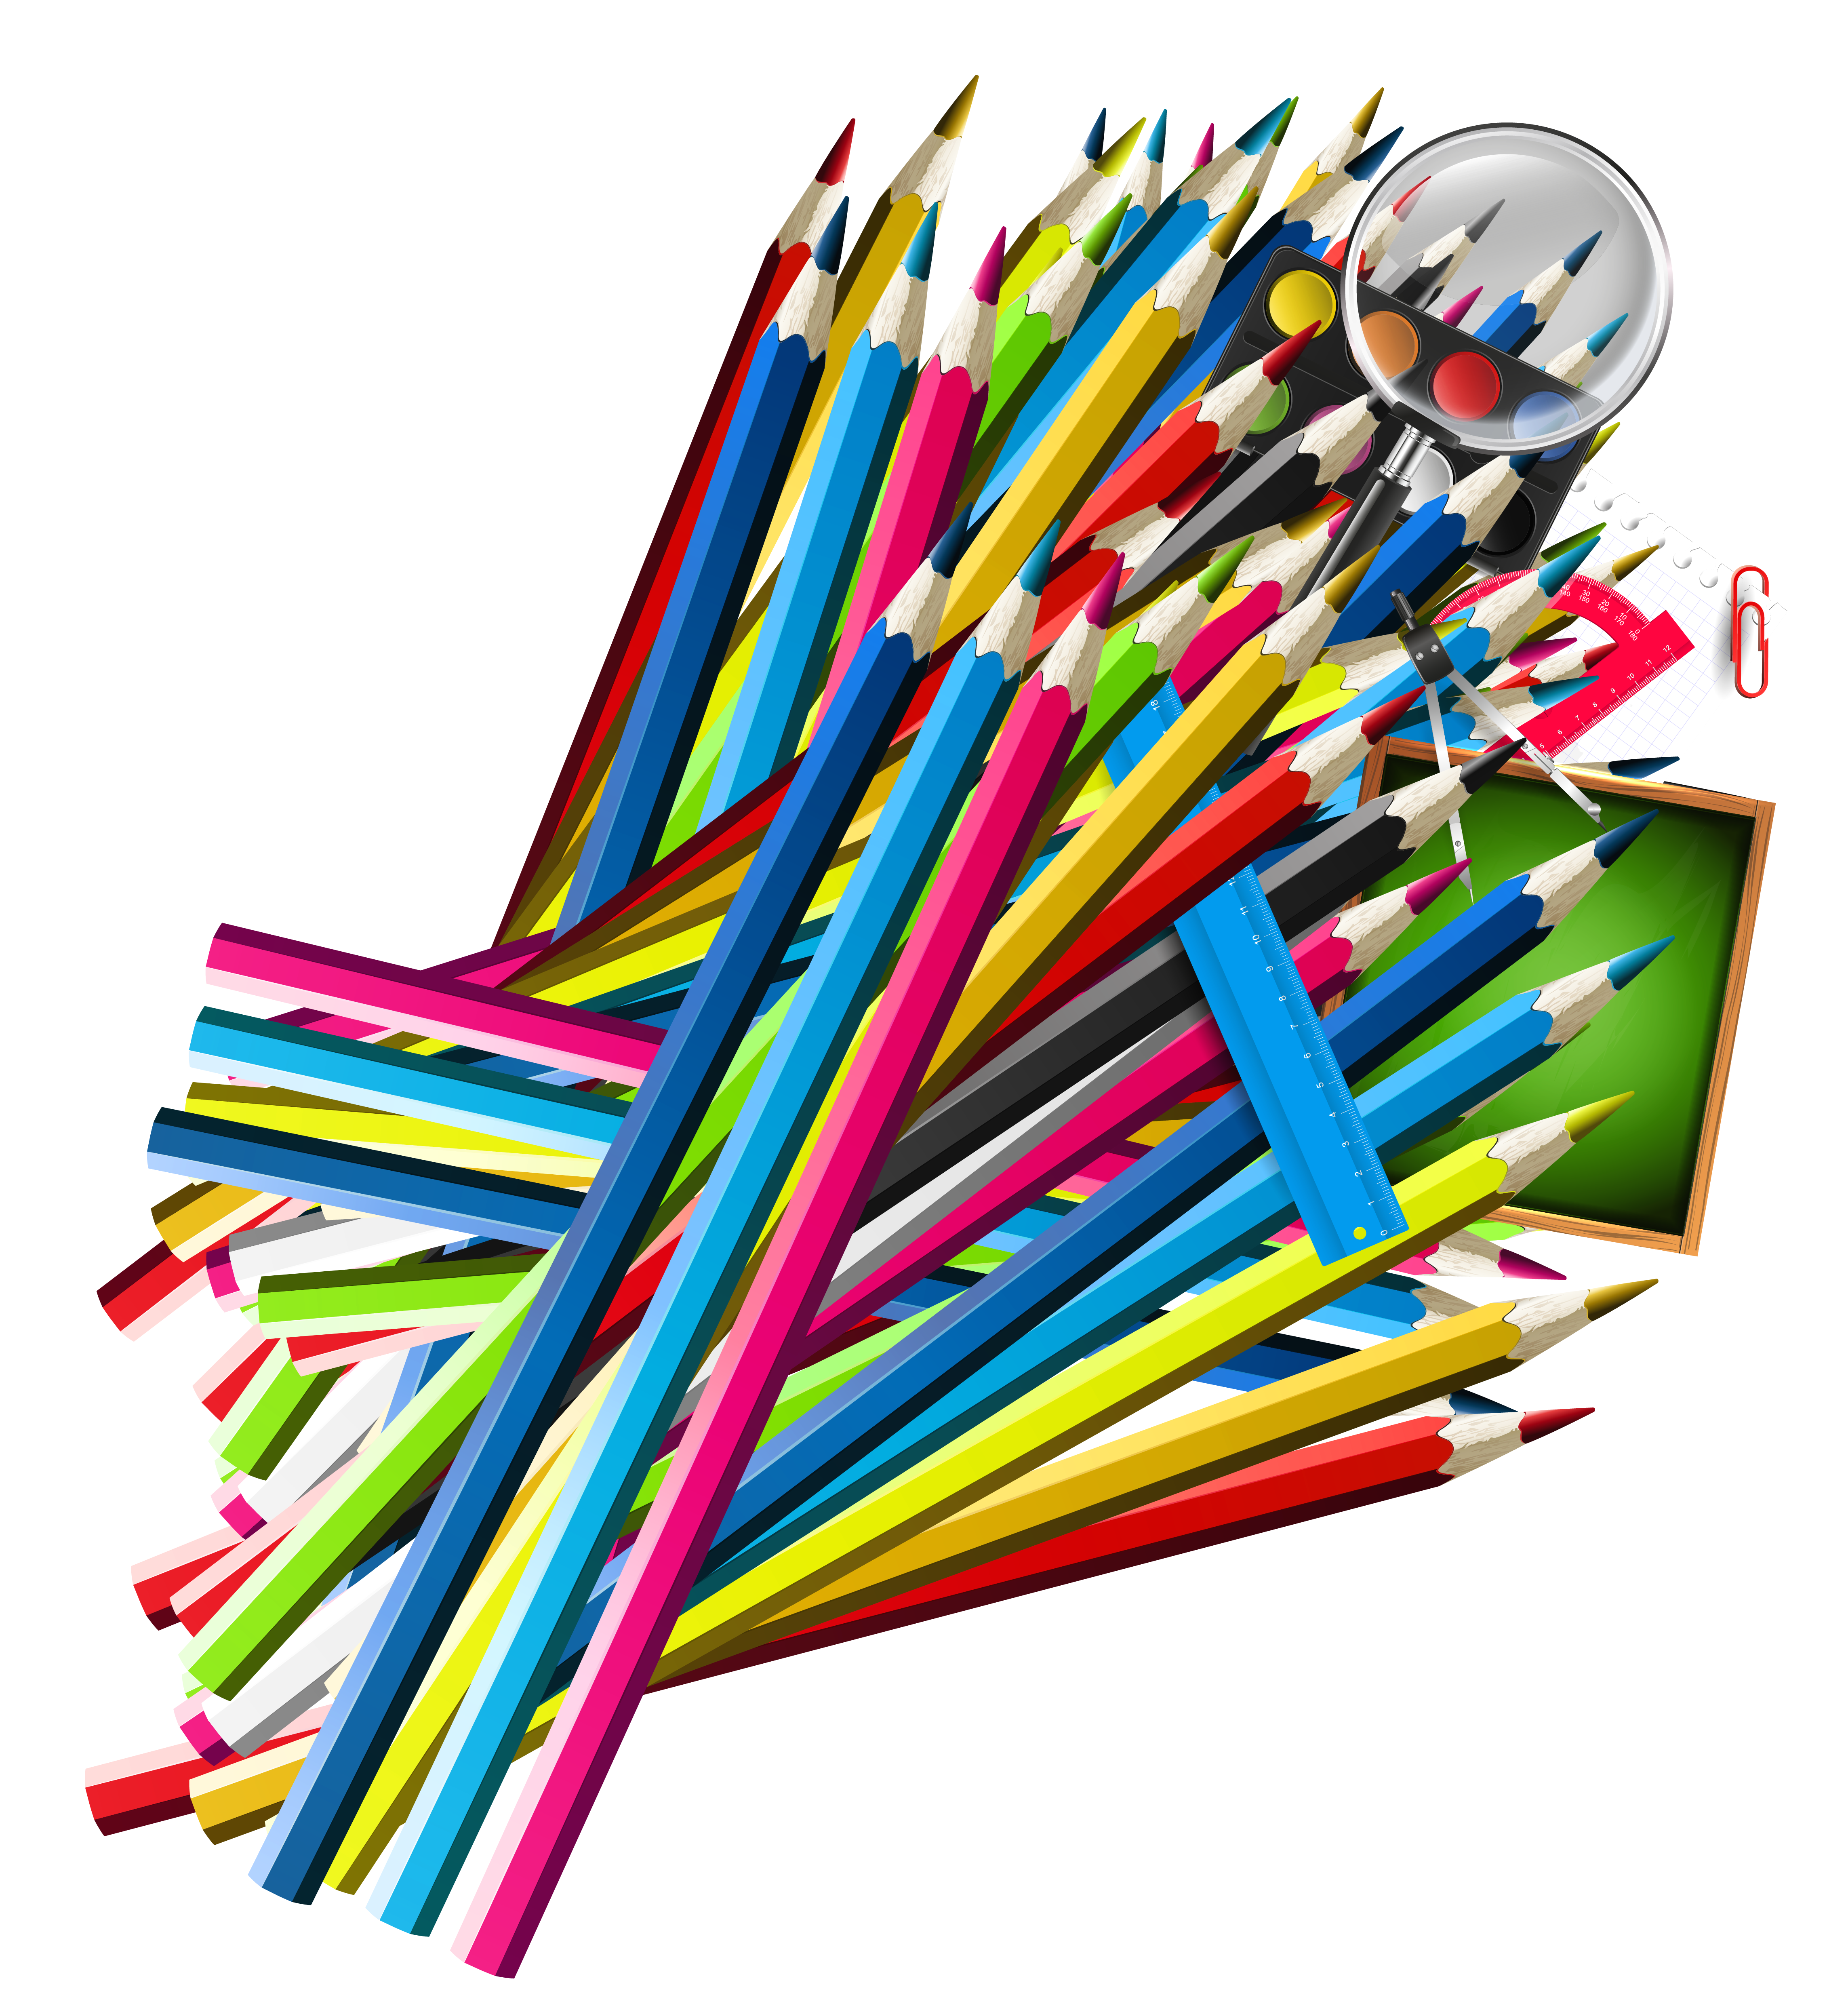 School pencil clipart clip art download School Pencil Decor PNG Clipart | Gallery Yopriceville - High ... clip art download